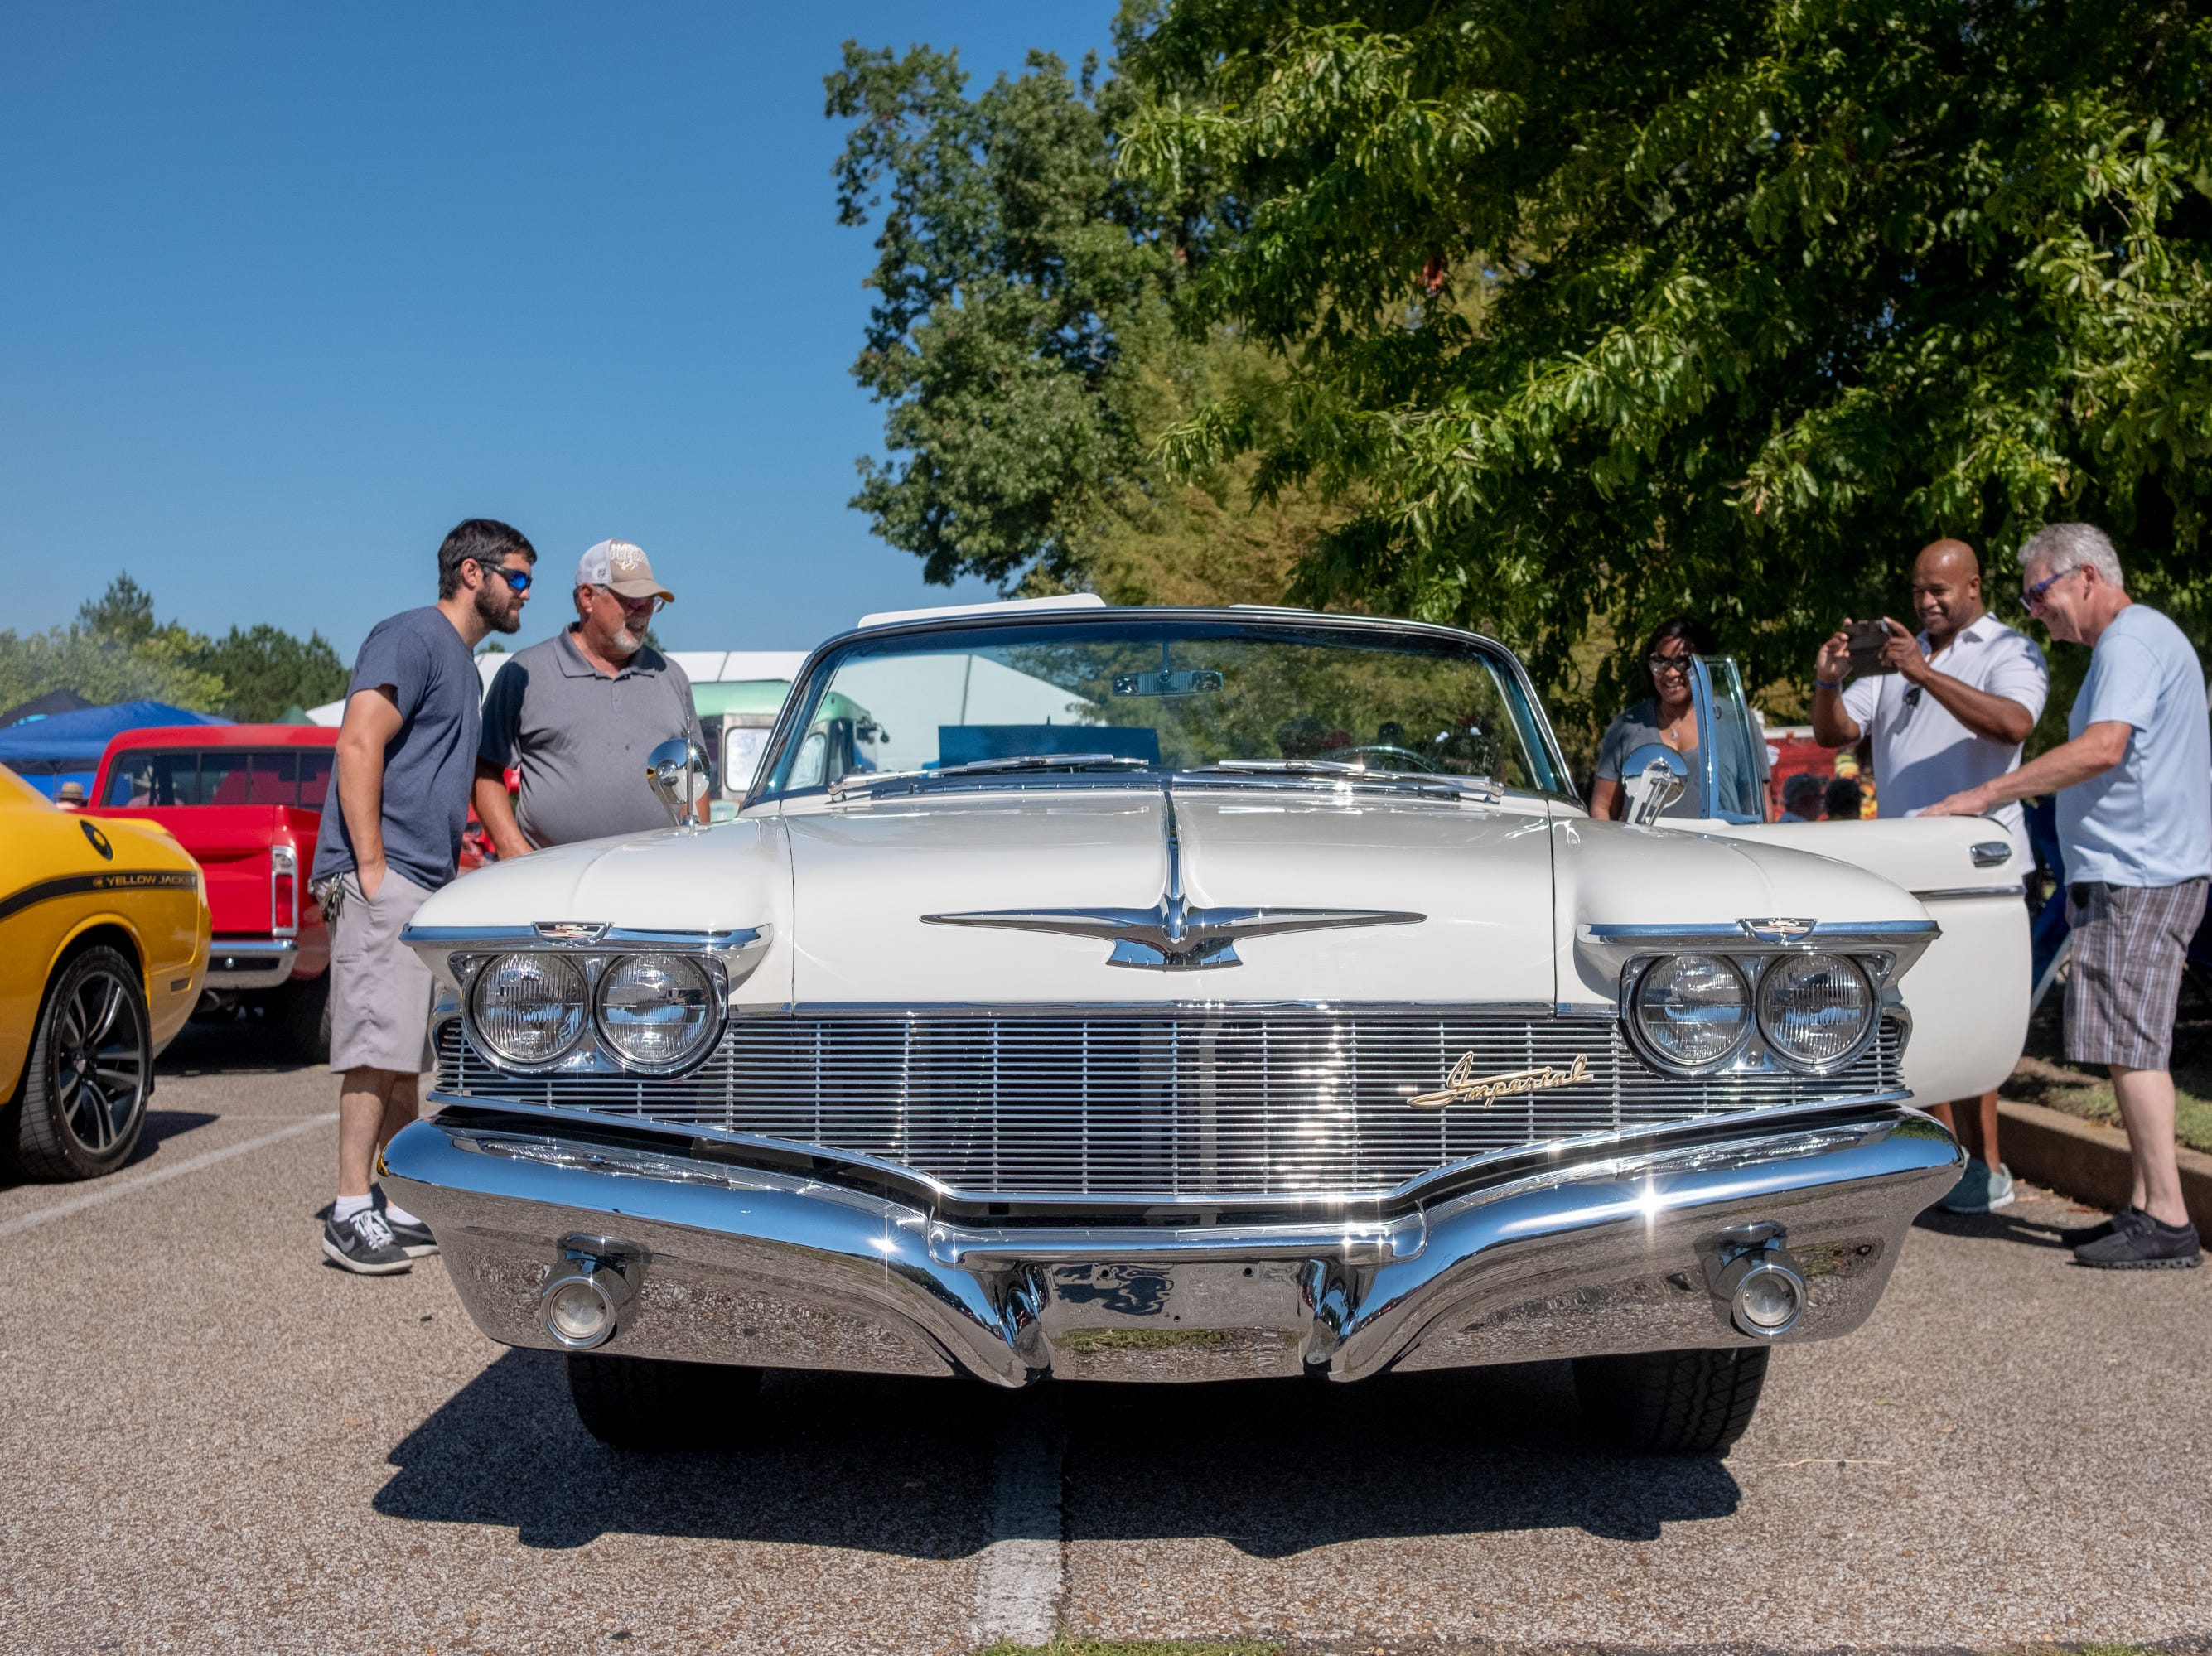 Visitors at the Collierville Classic Car Show admire vehicles and take photos on Sept. 15, 2018.